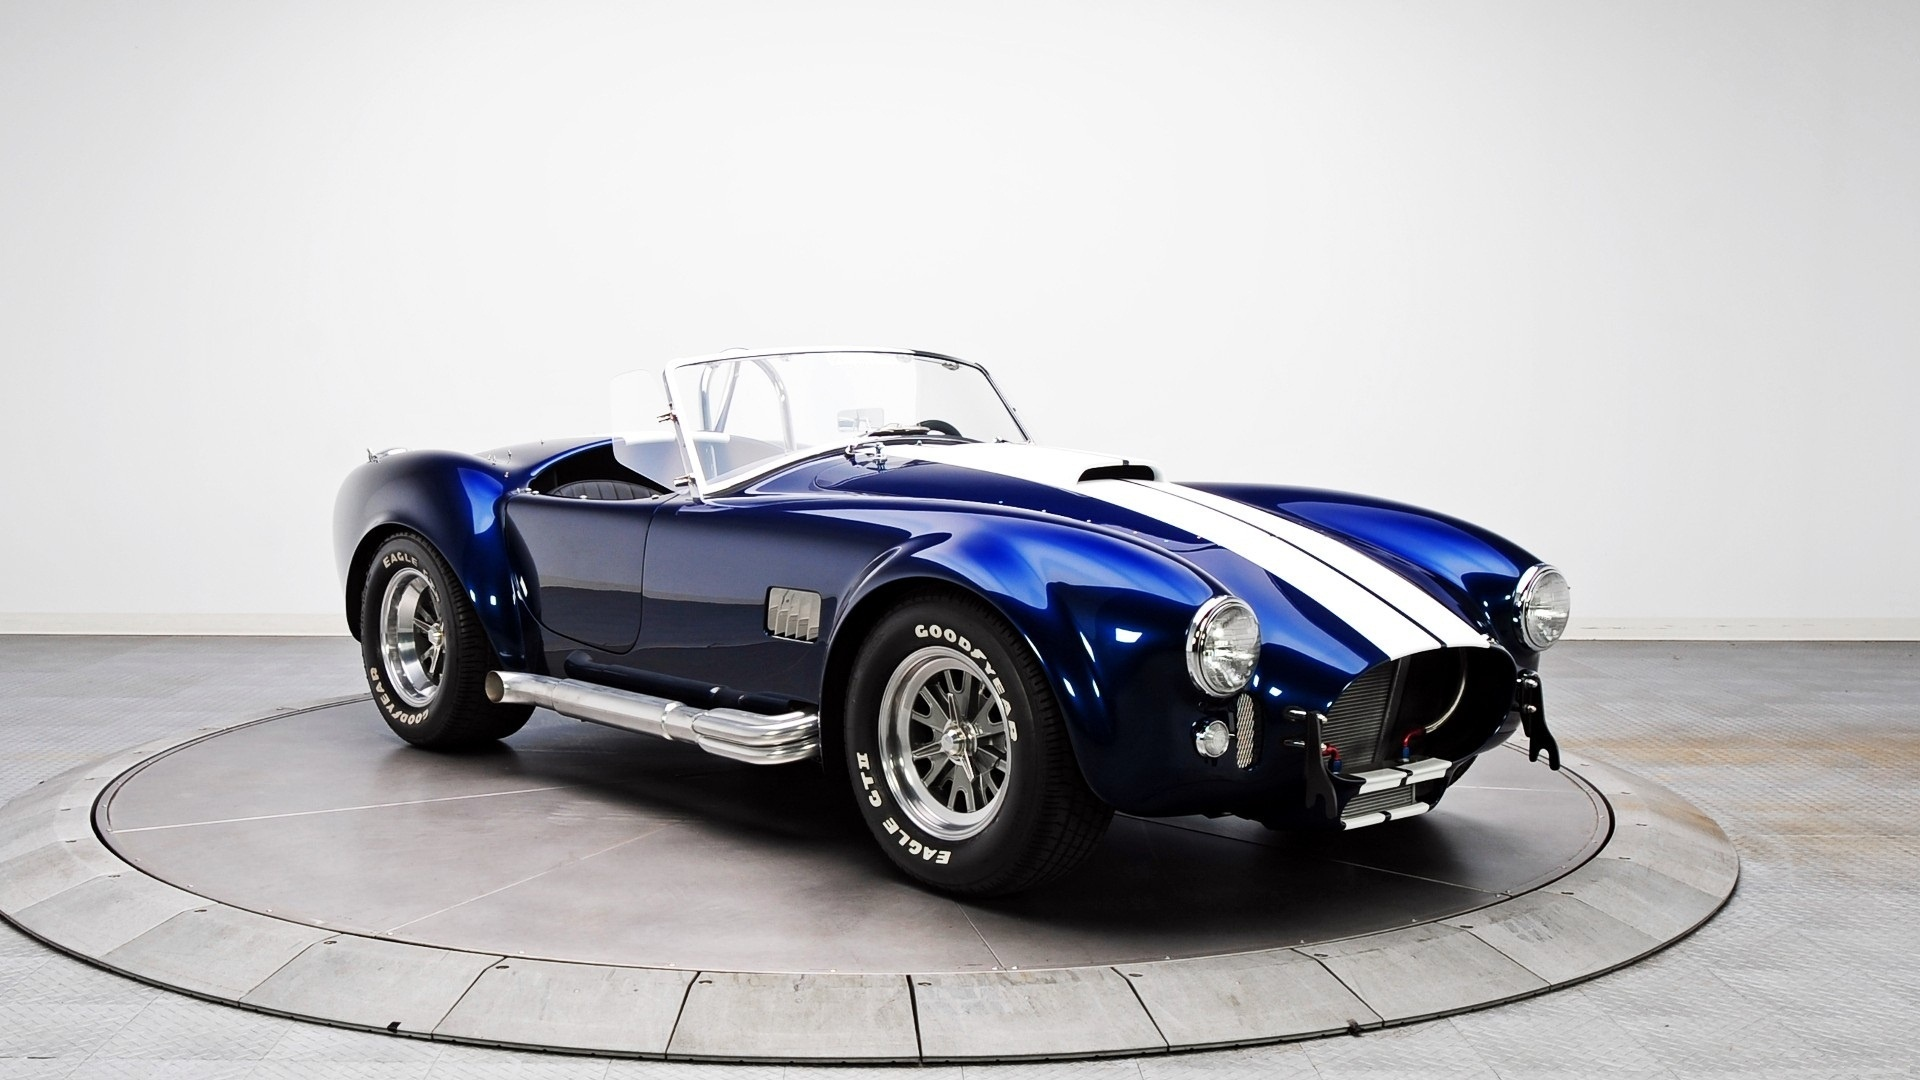 Shelby cobra blue manual 1965 wallpapers 1920x1080 402777